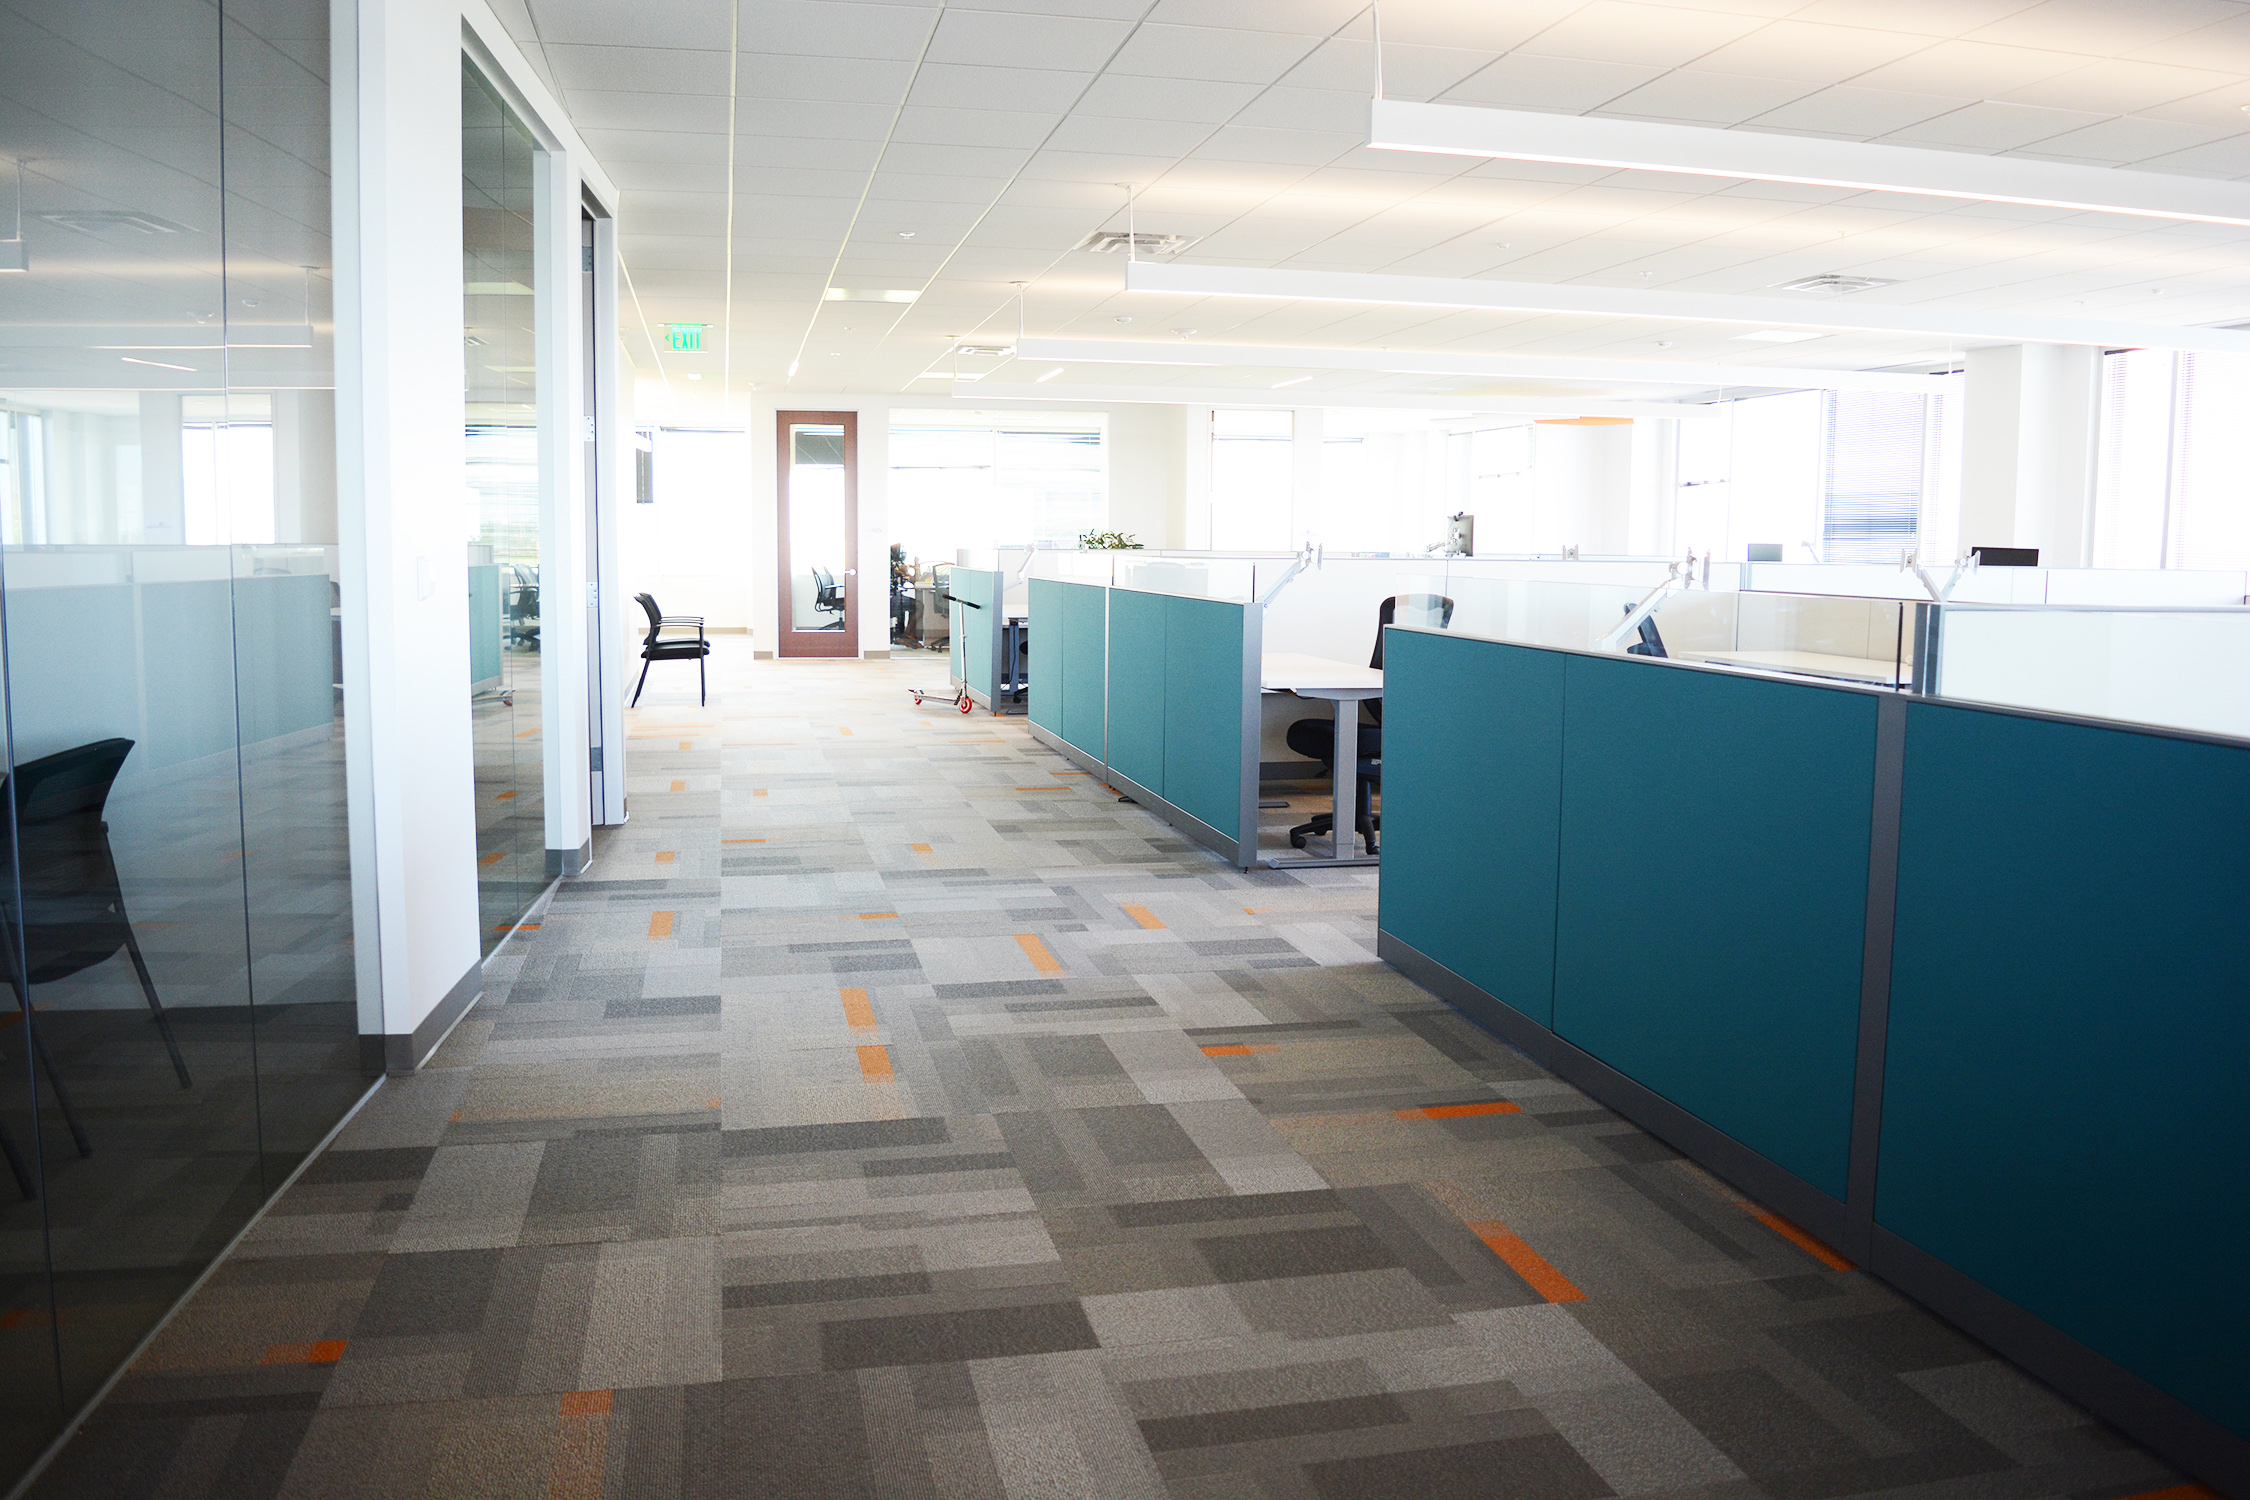 From the beginning, the approach to space planning was to provide all employees access to natural light and the mountain views. This was achieved by placing private glass front offices on the interior and utilizing workstations with glass privacy screens to allow light to filter within the open office. The teal end panels paired with  Patcraft's Color Pop  carpet add the final touch of branding needed throughout the office.